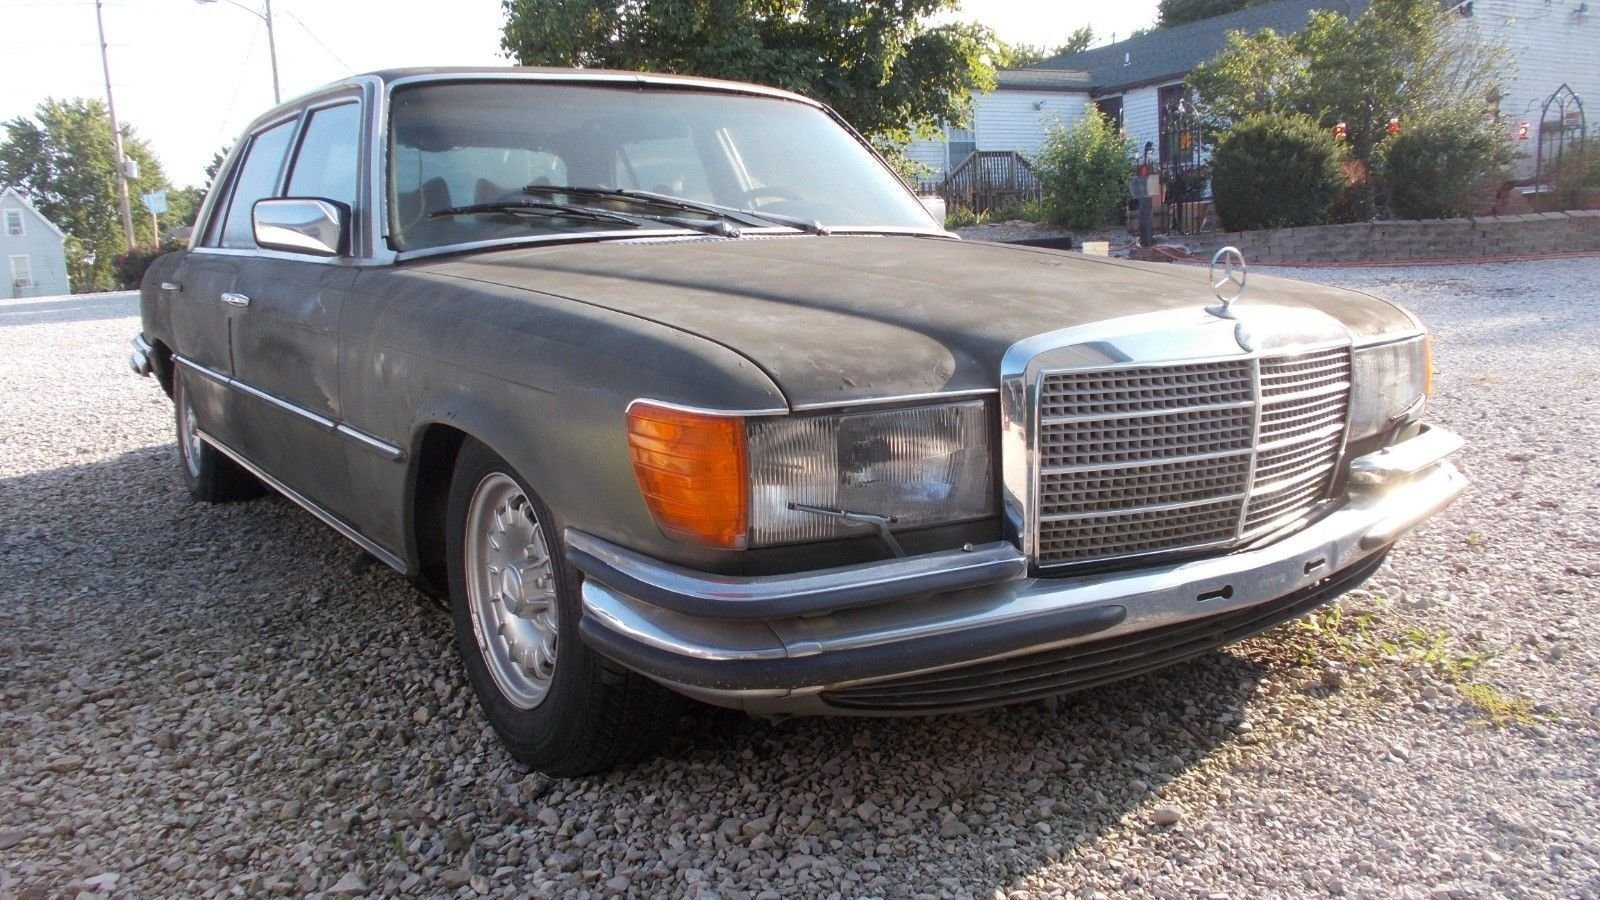 1979 Mercedes-Benz 450 SEL 6.9 Euro Version